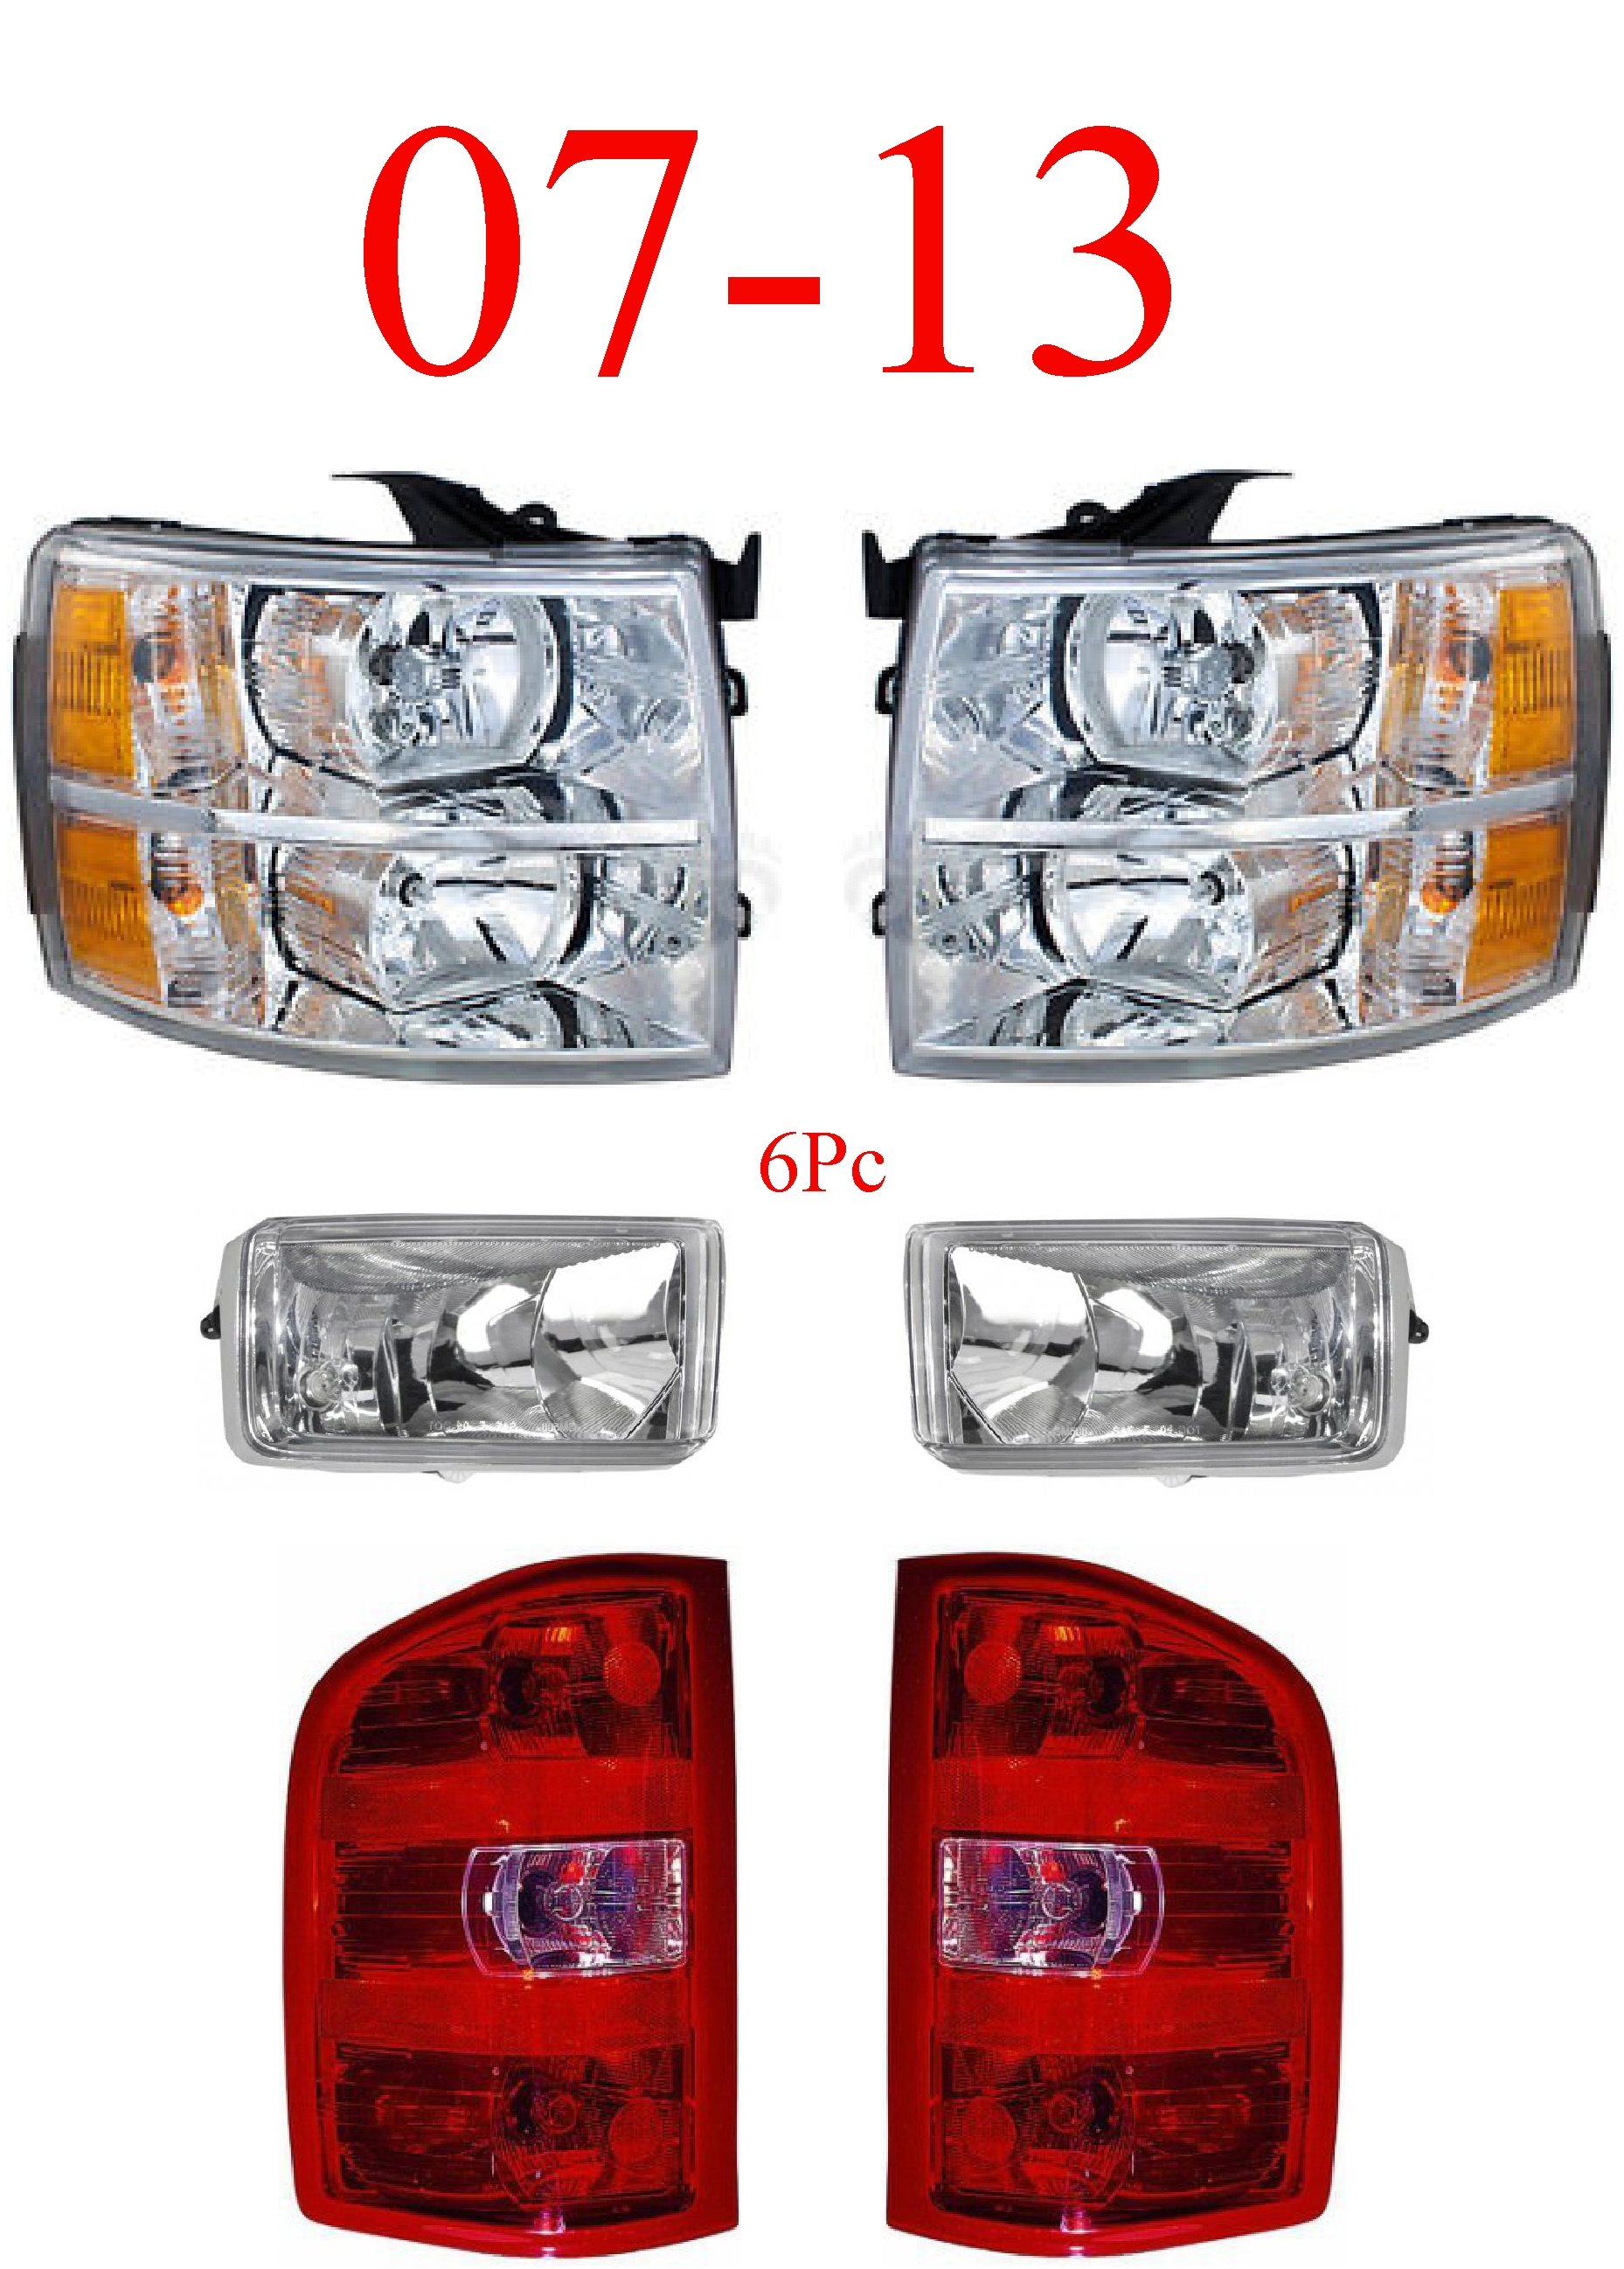 07-13 Chevy 6Pc Head, Fog & Tail Light Set